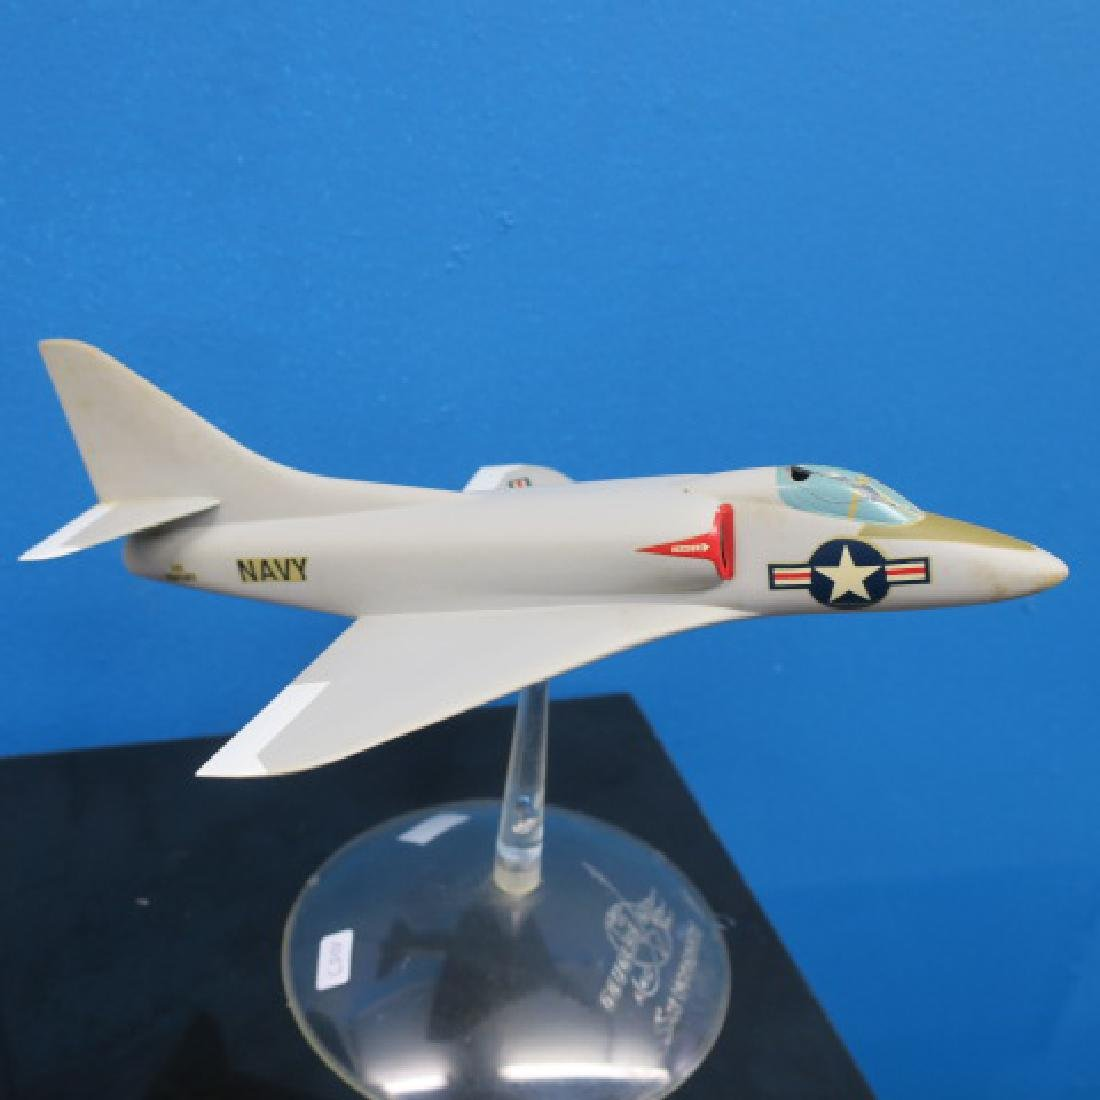 Manufacturers Models of F3H DEAMON & A4D SKYHAWK: - 2